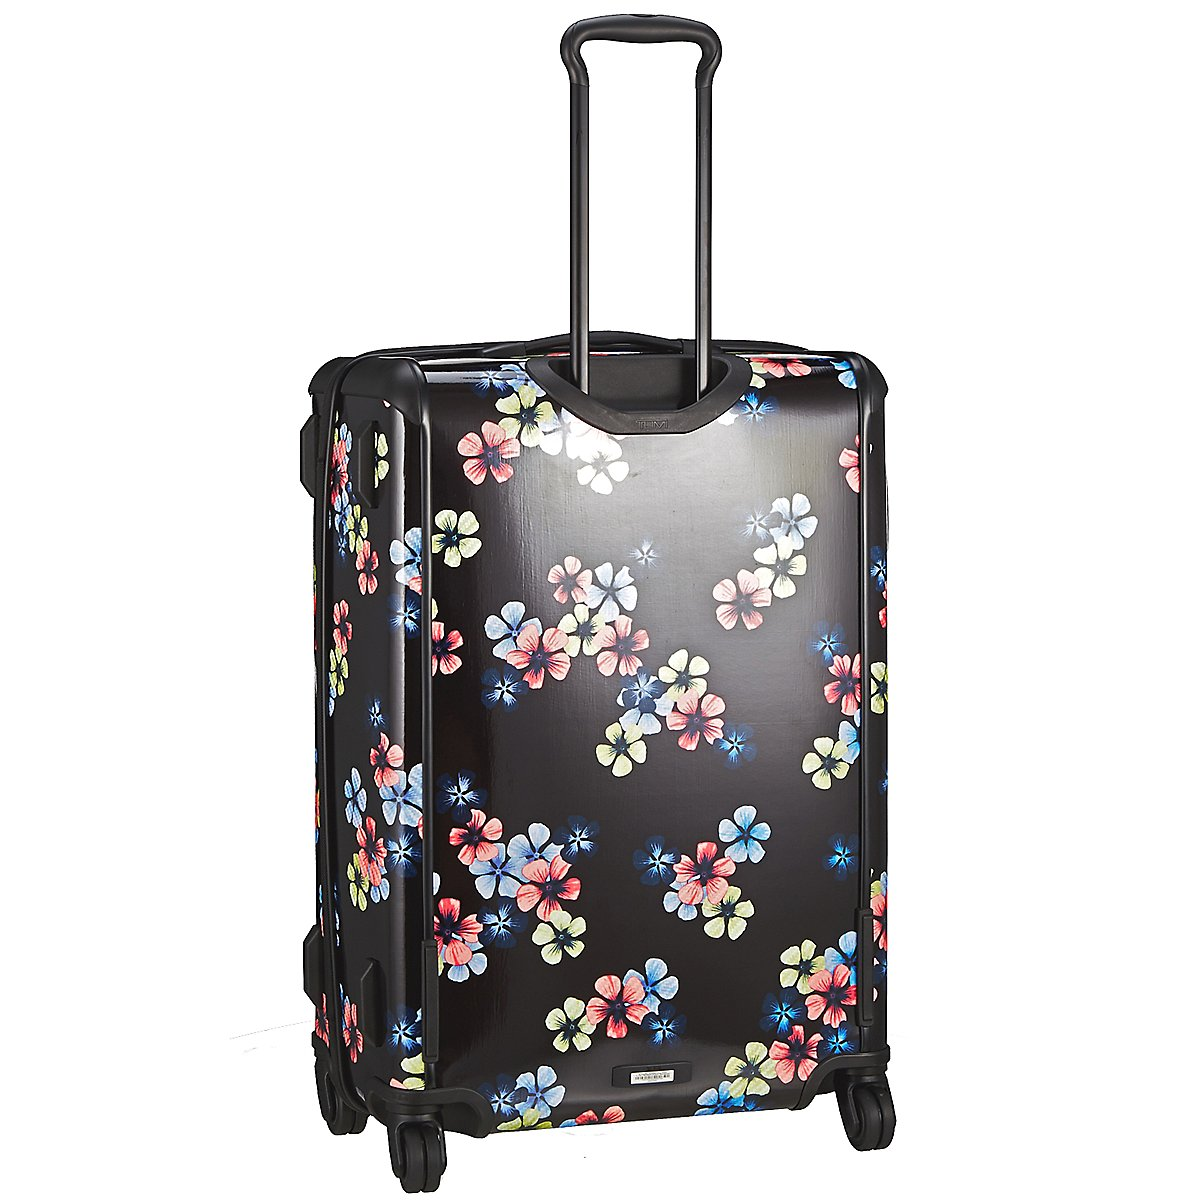 tumi tegra lite carry on 4 rollen trolley 73 cm koffer. Black Bedroom Furniture Sets. Home Design Ideas